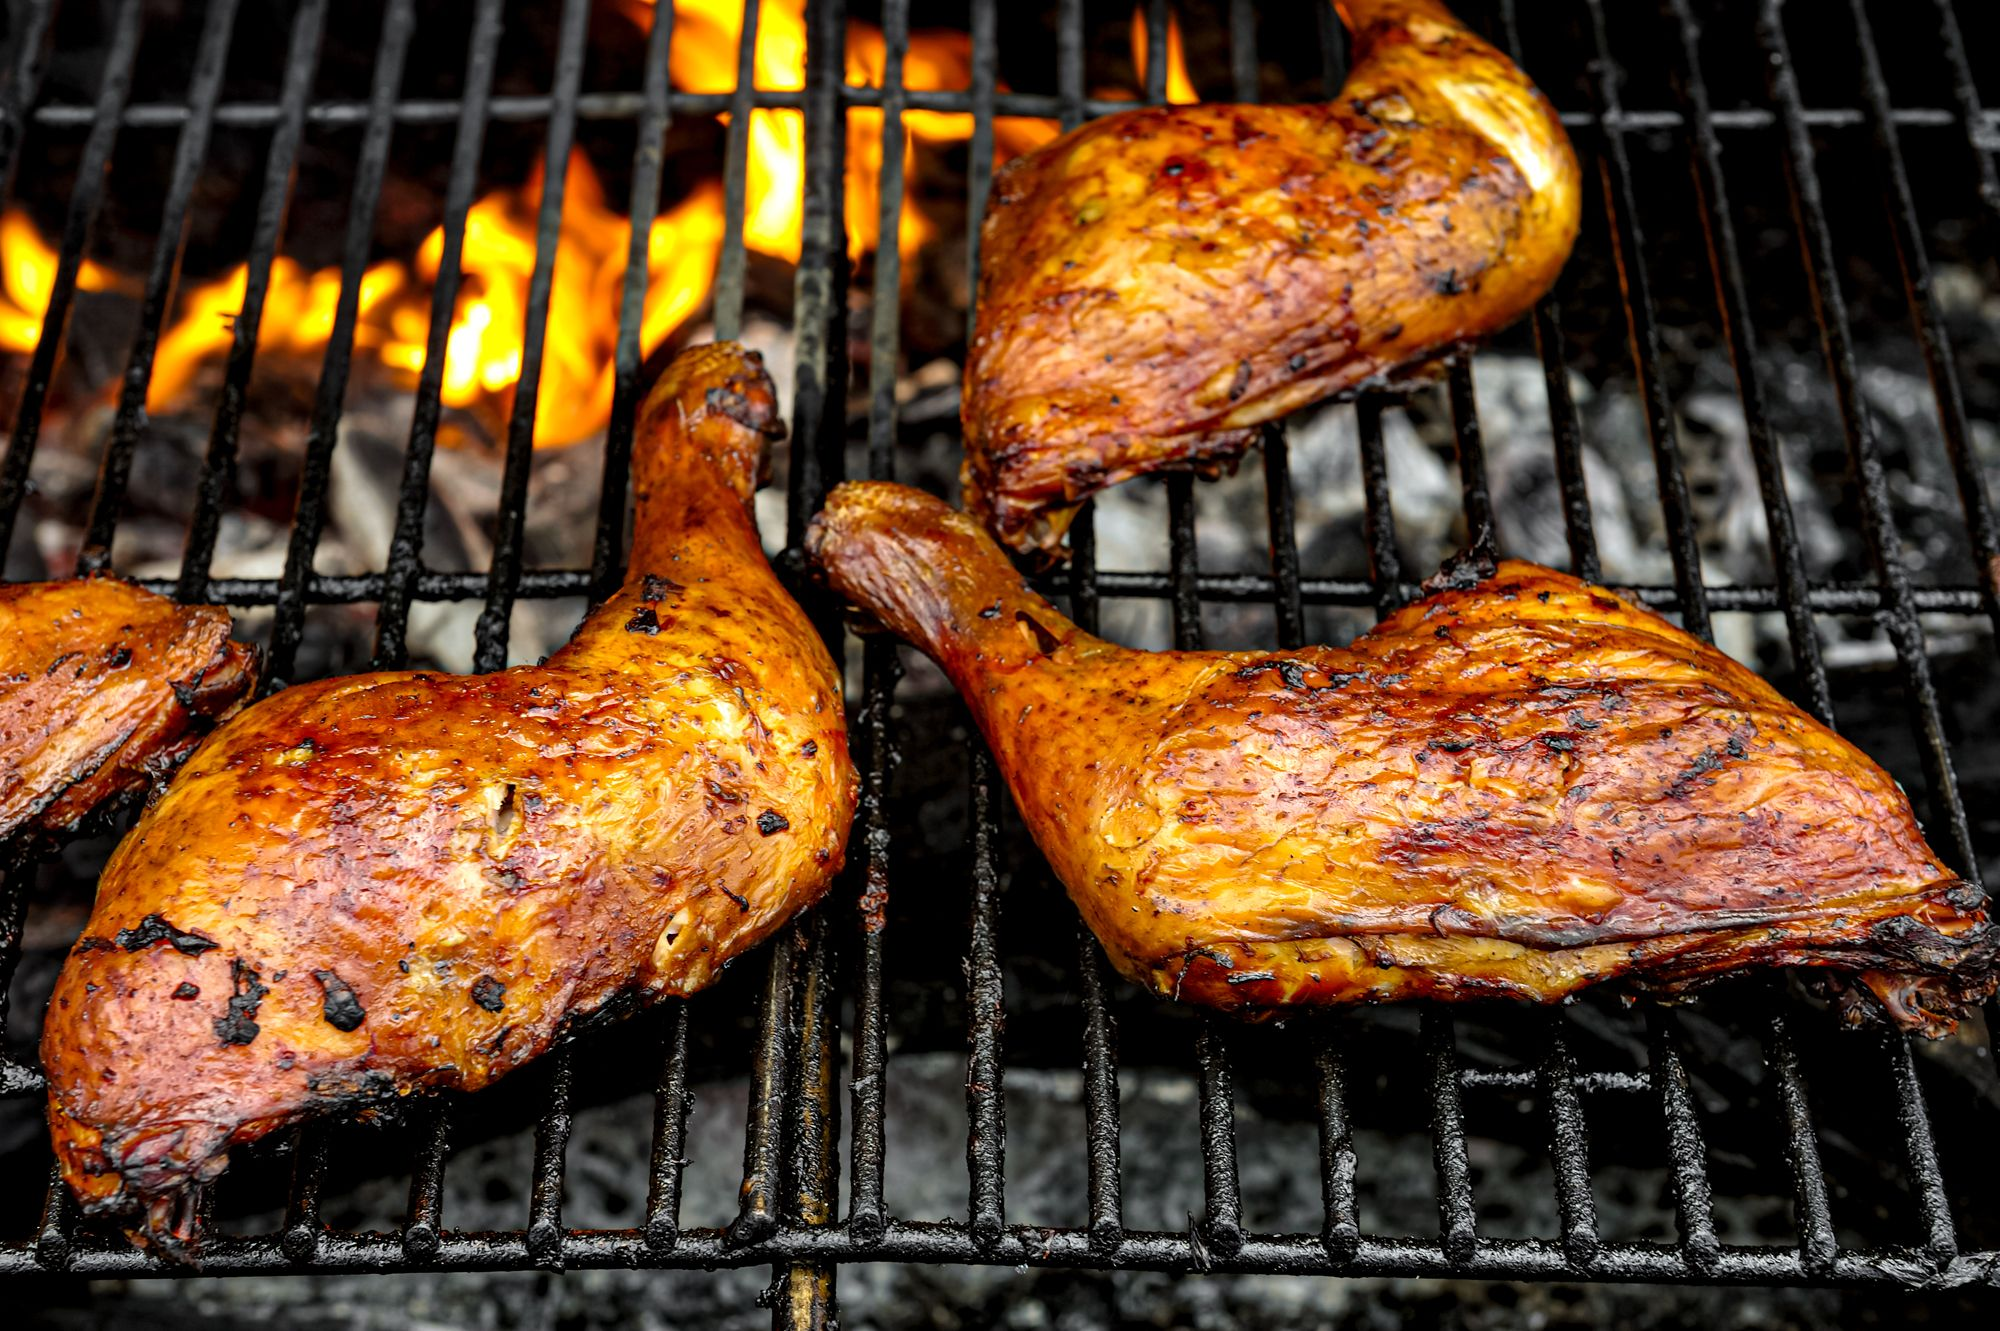 How To Make Jamaican-Style Jerk Chicken